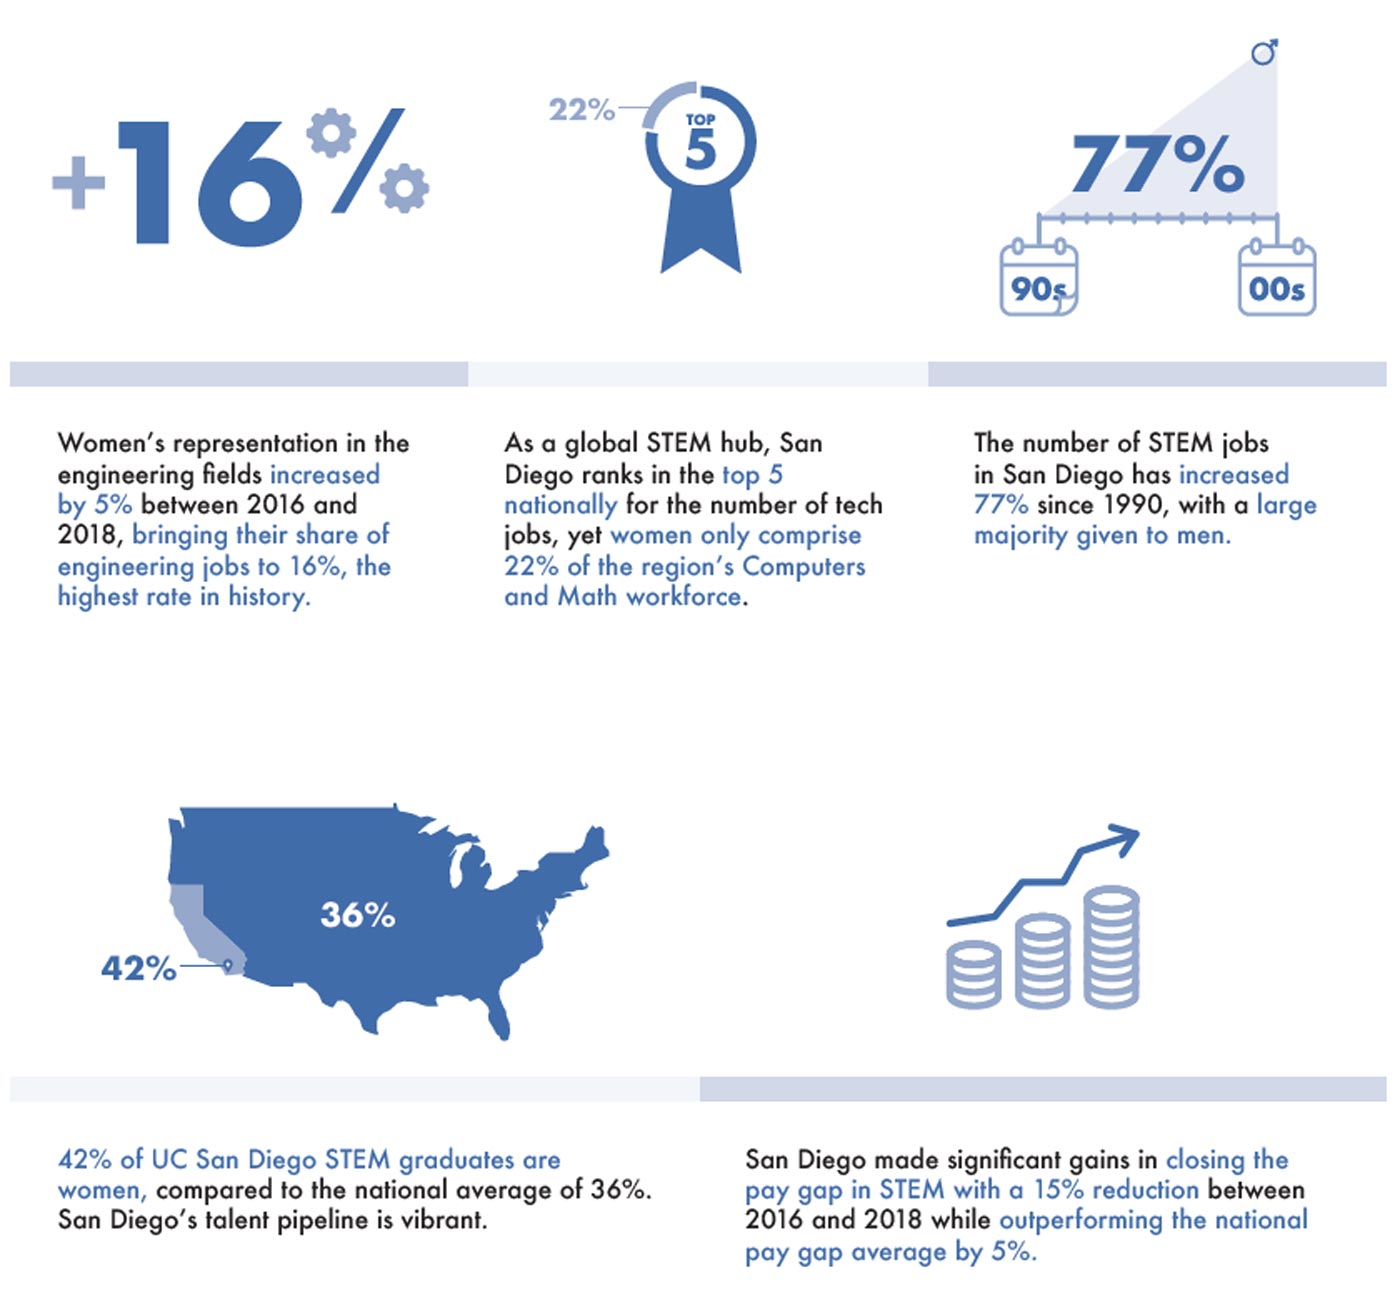 infographic about women in stem